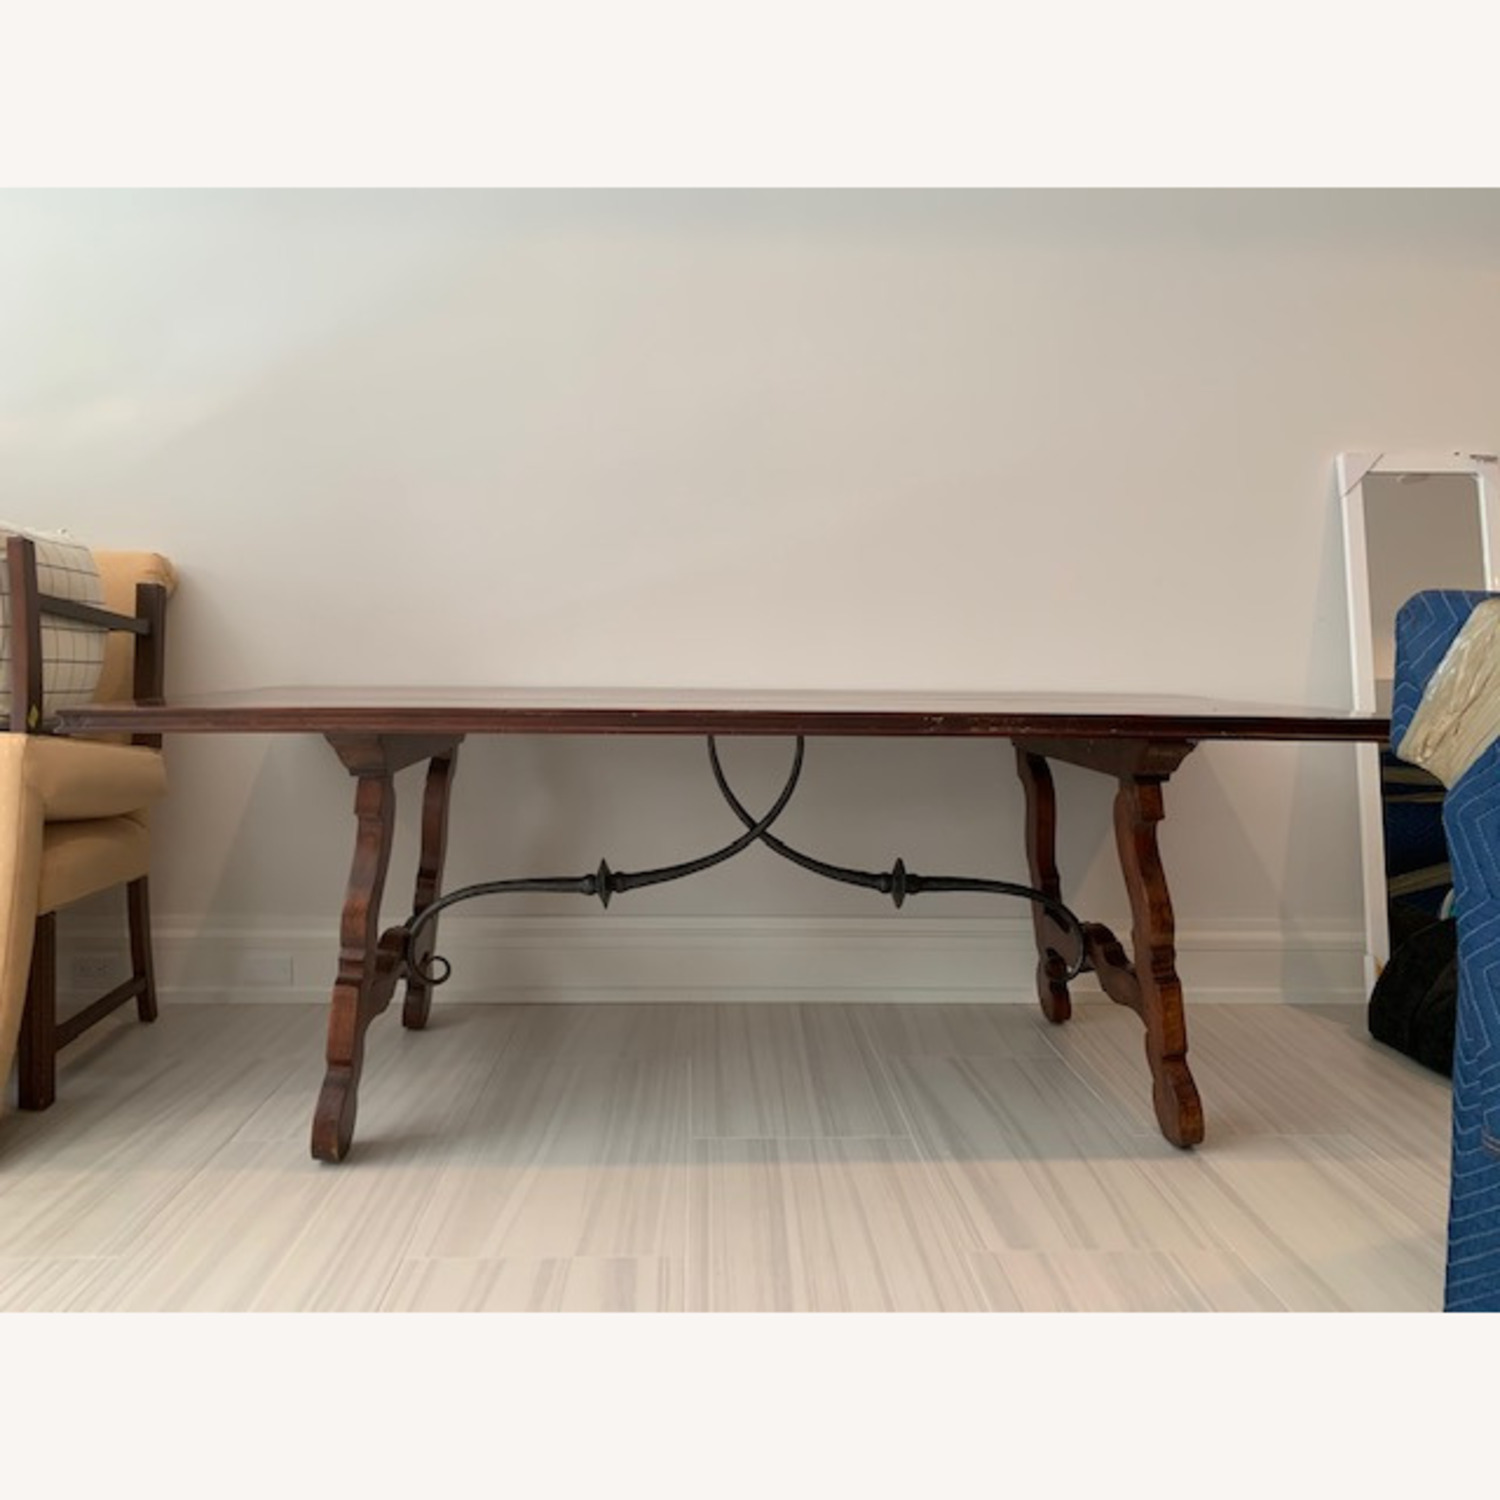 Spanish Style Farm Trestle Table with Forged Steel - image-1